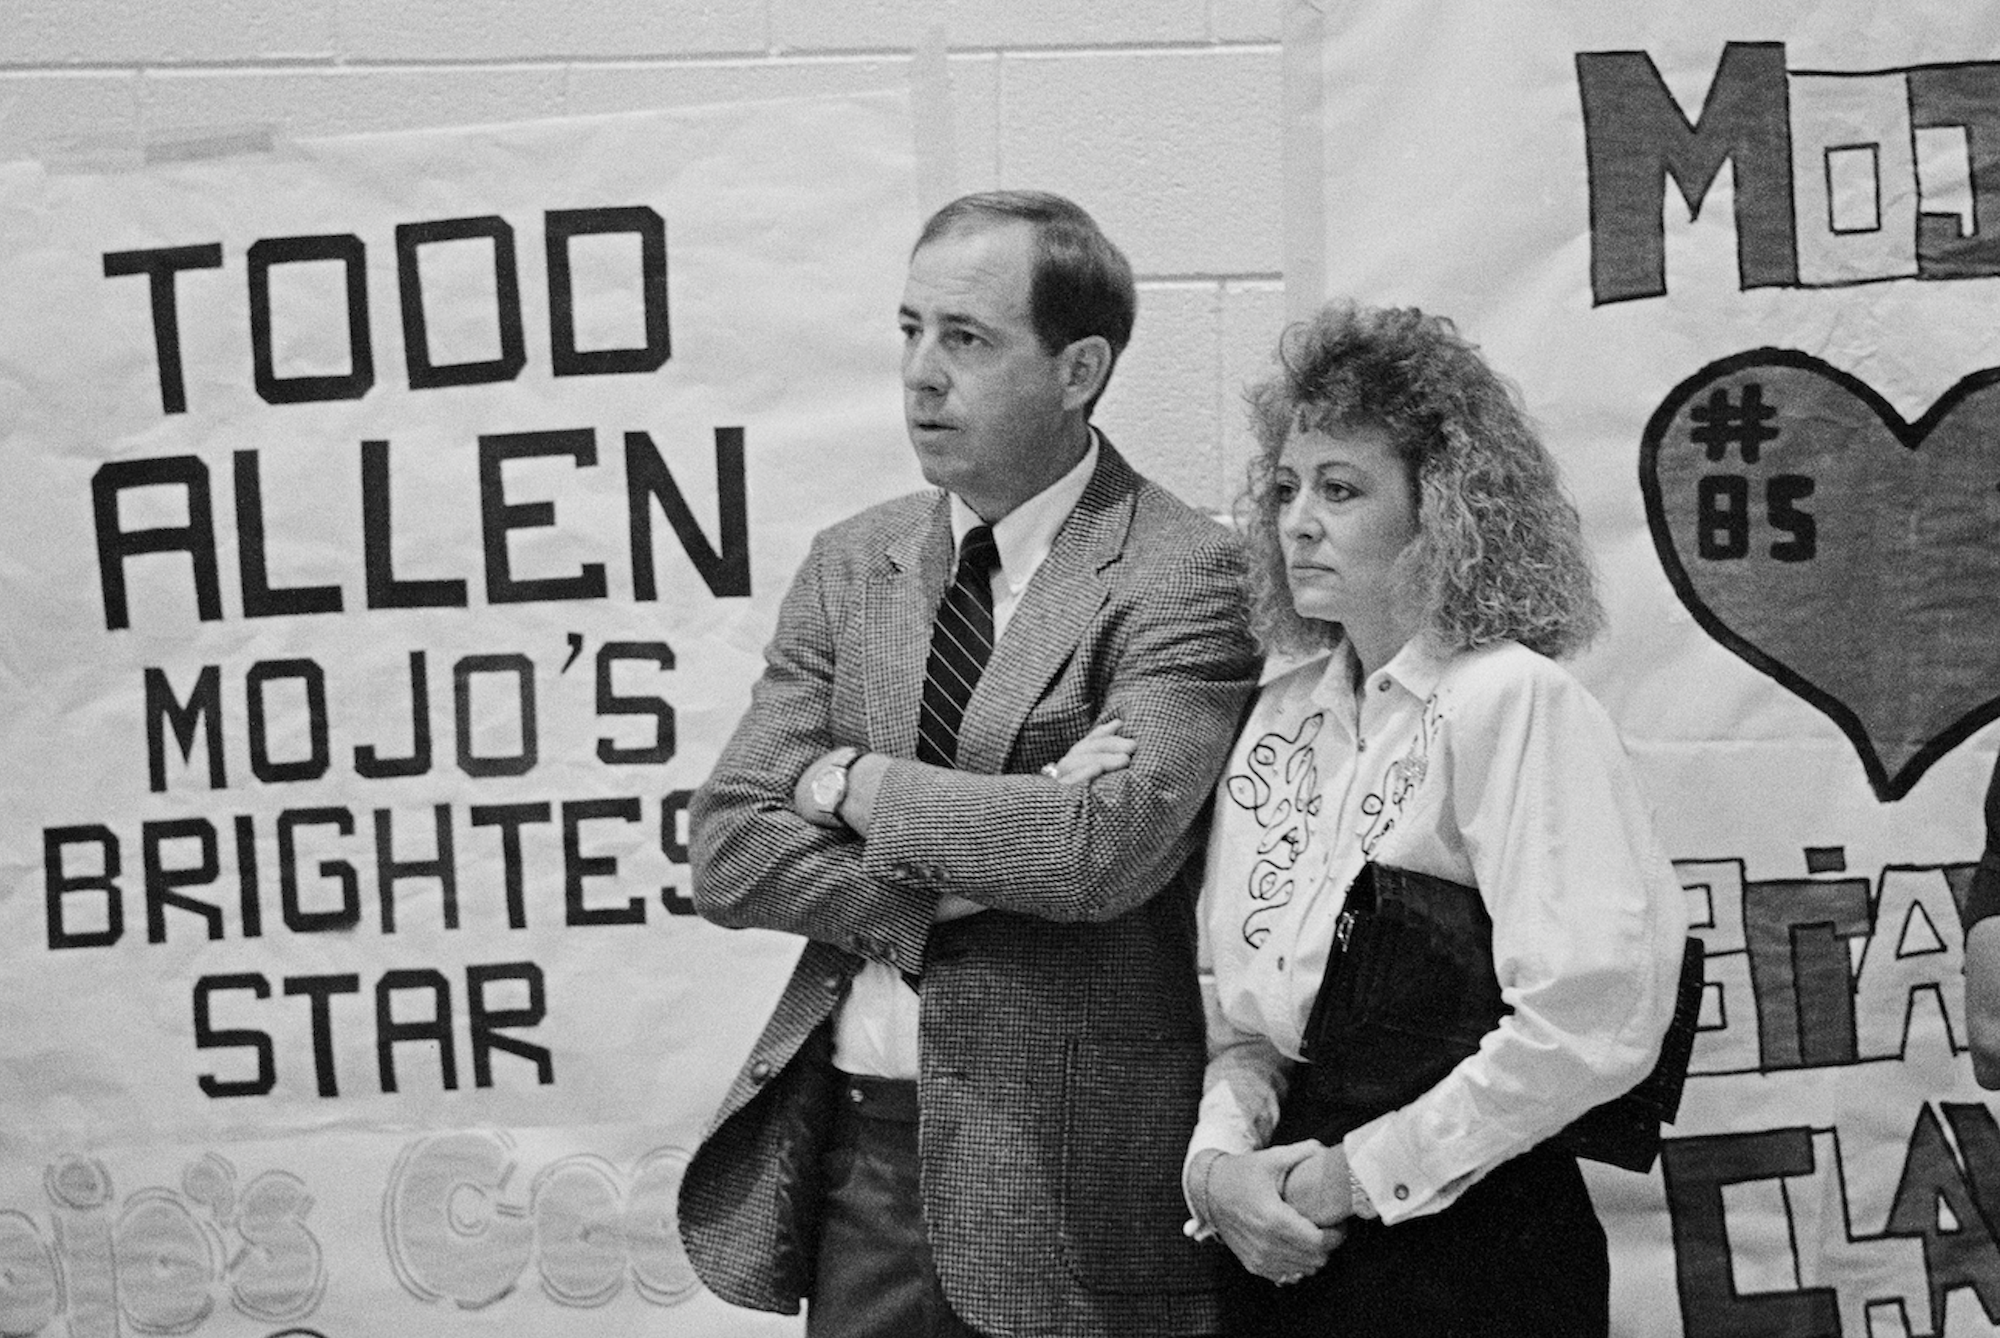 """A man and a woman stand next to lettering: """"Todd Allen Mojo's Brightest Star"""""""